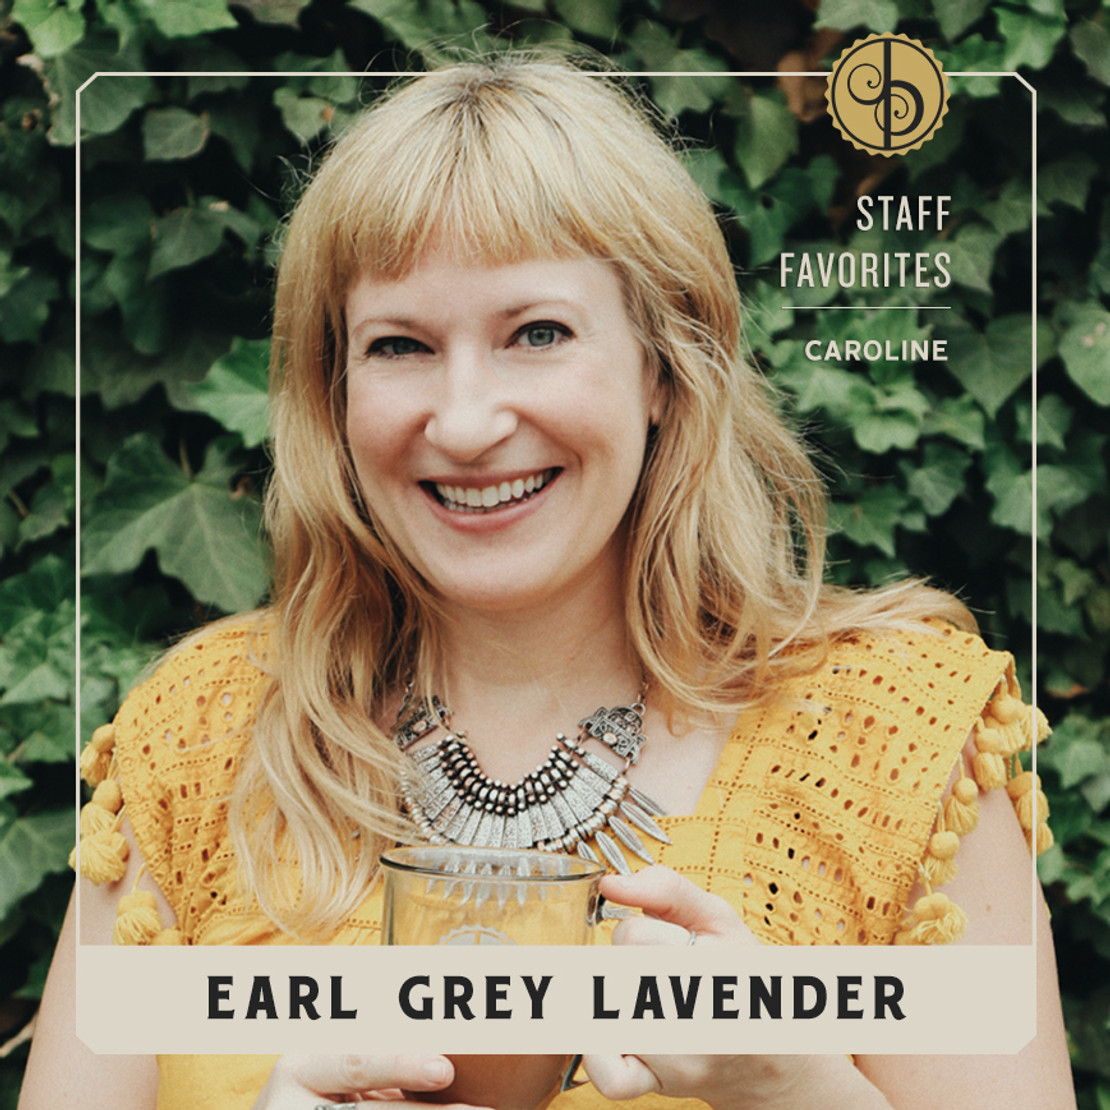 Staff Favorites: Caroline & Earl Grey Lavender